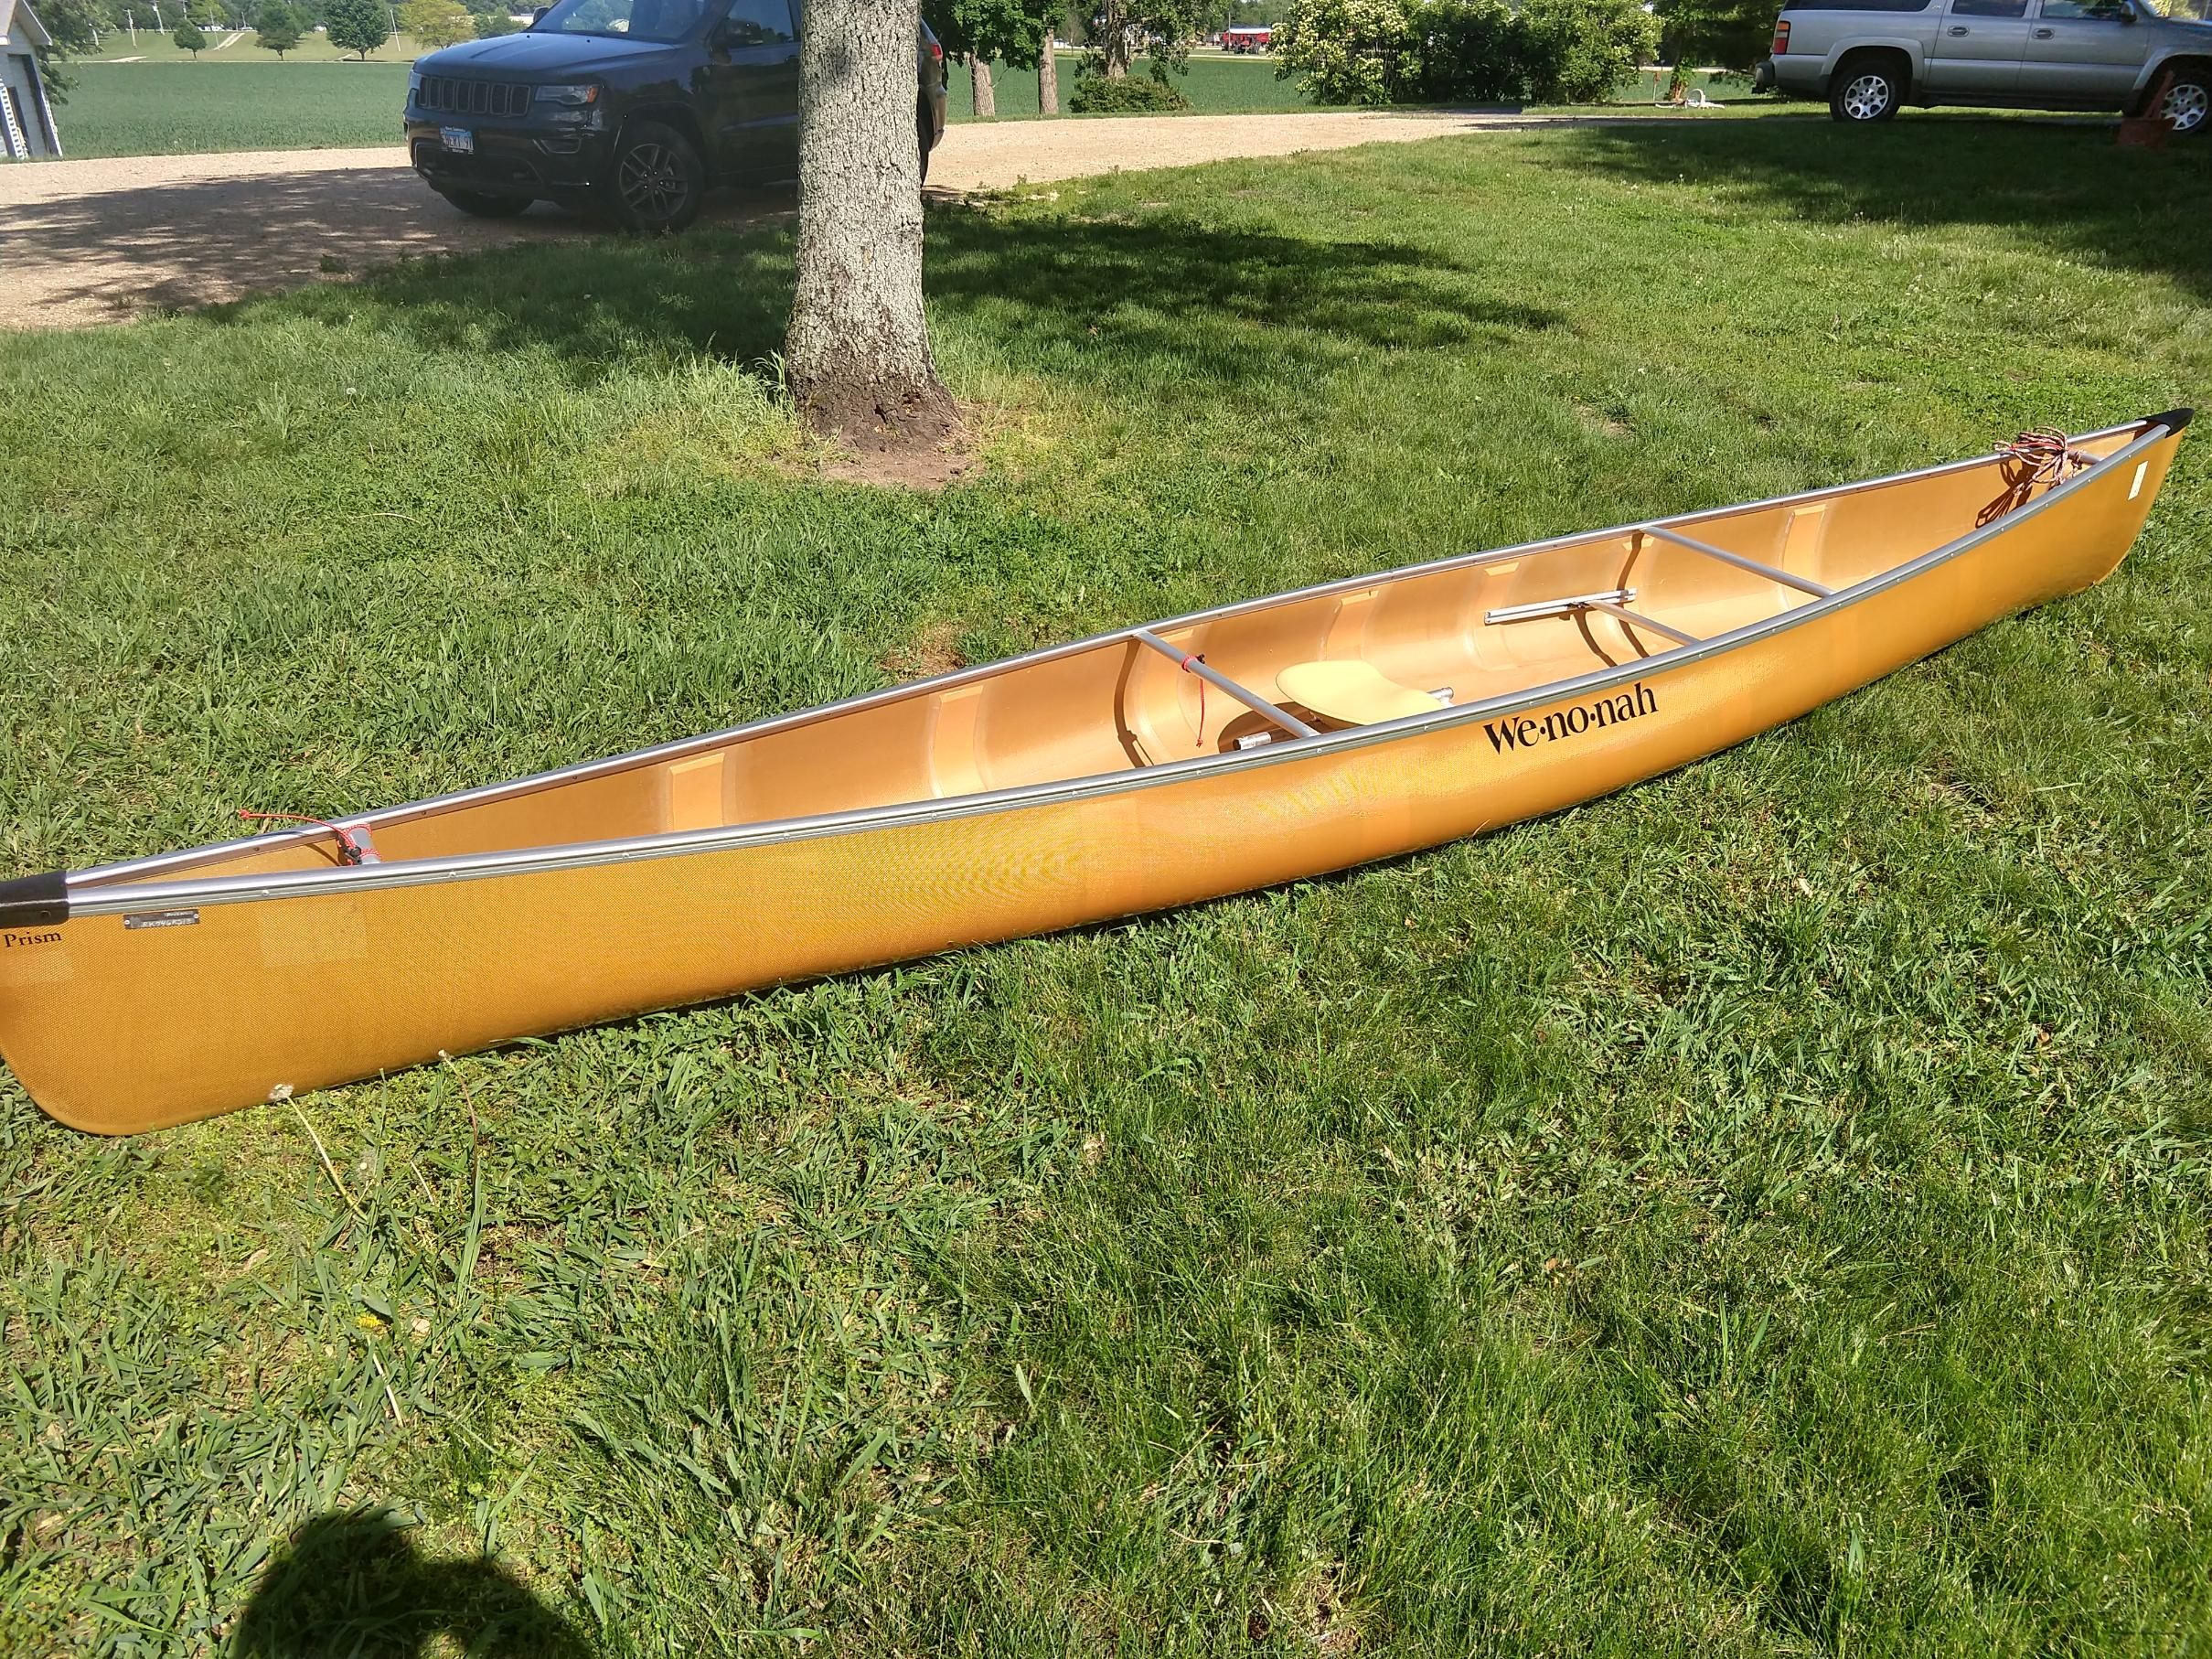 BWCA For Sale- Wenonah Prism- Solo Canoe Boundary Waters